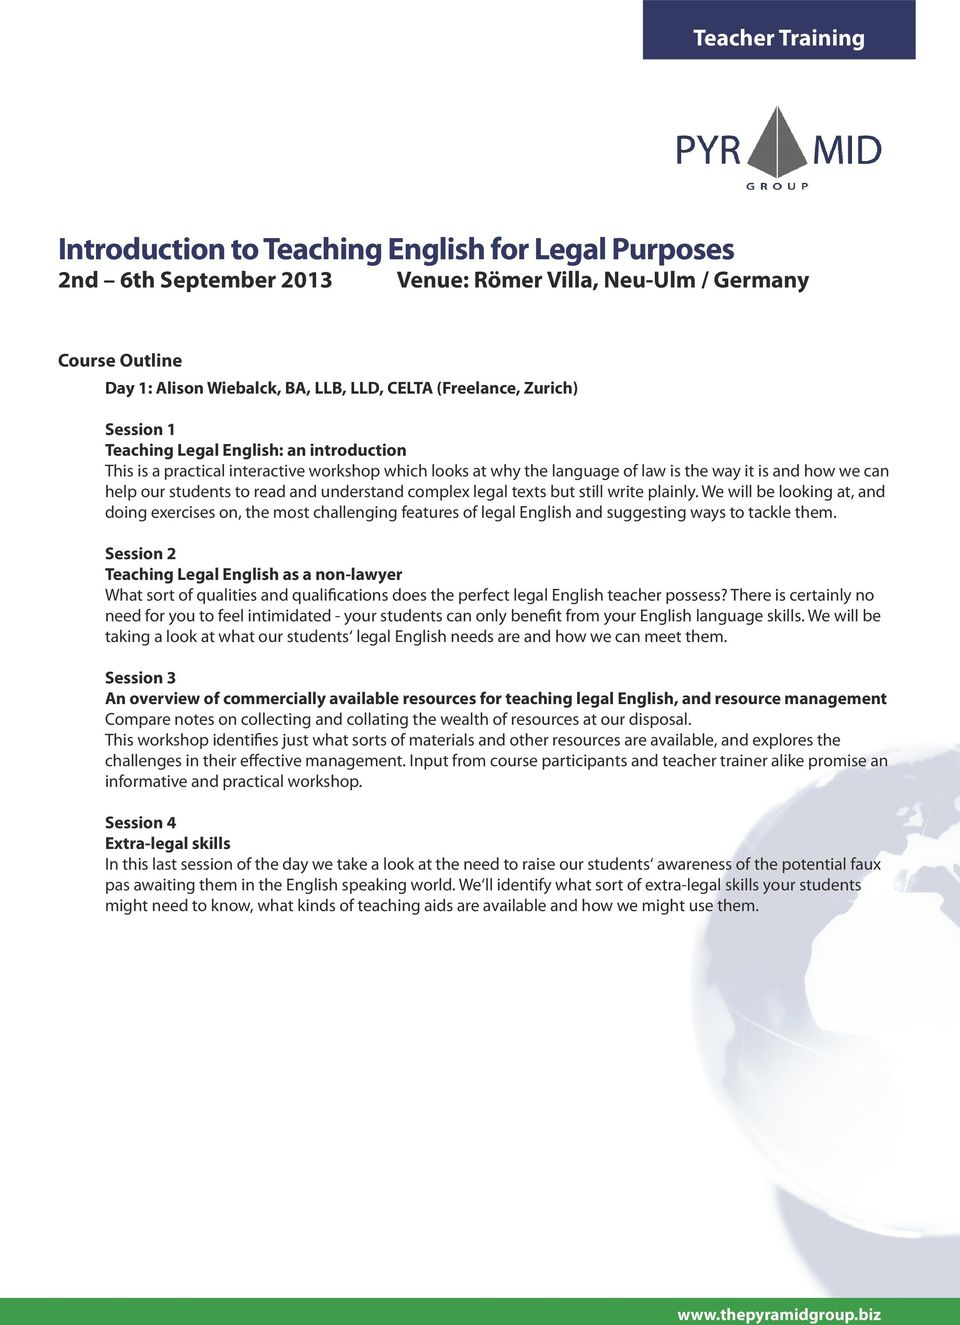 Introduction to Teaching English for Legal Purposes (ITELP